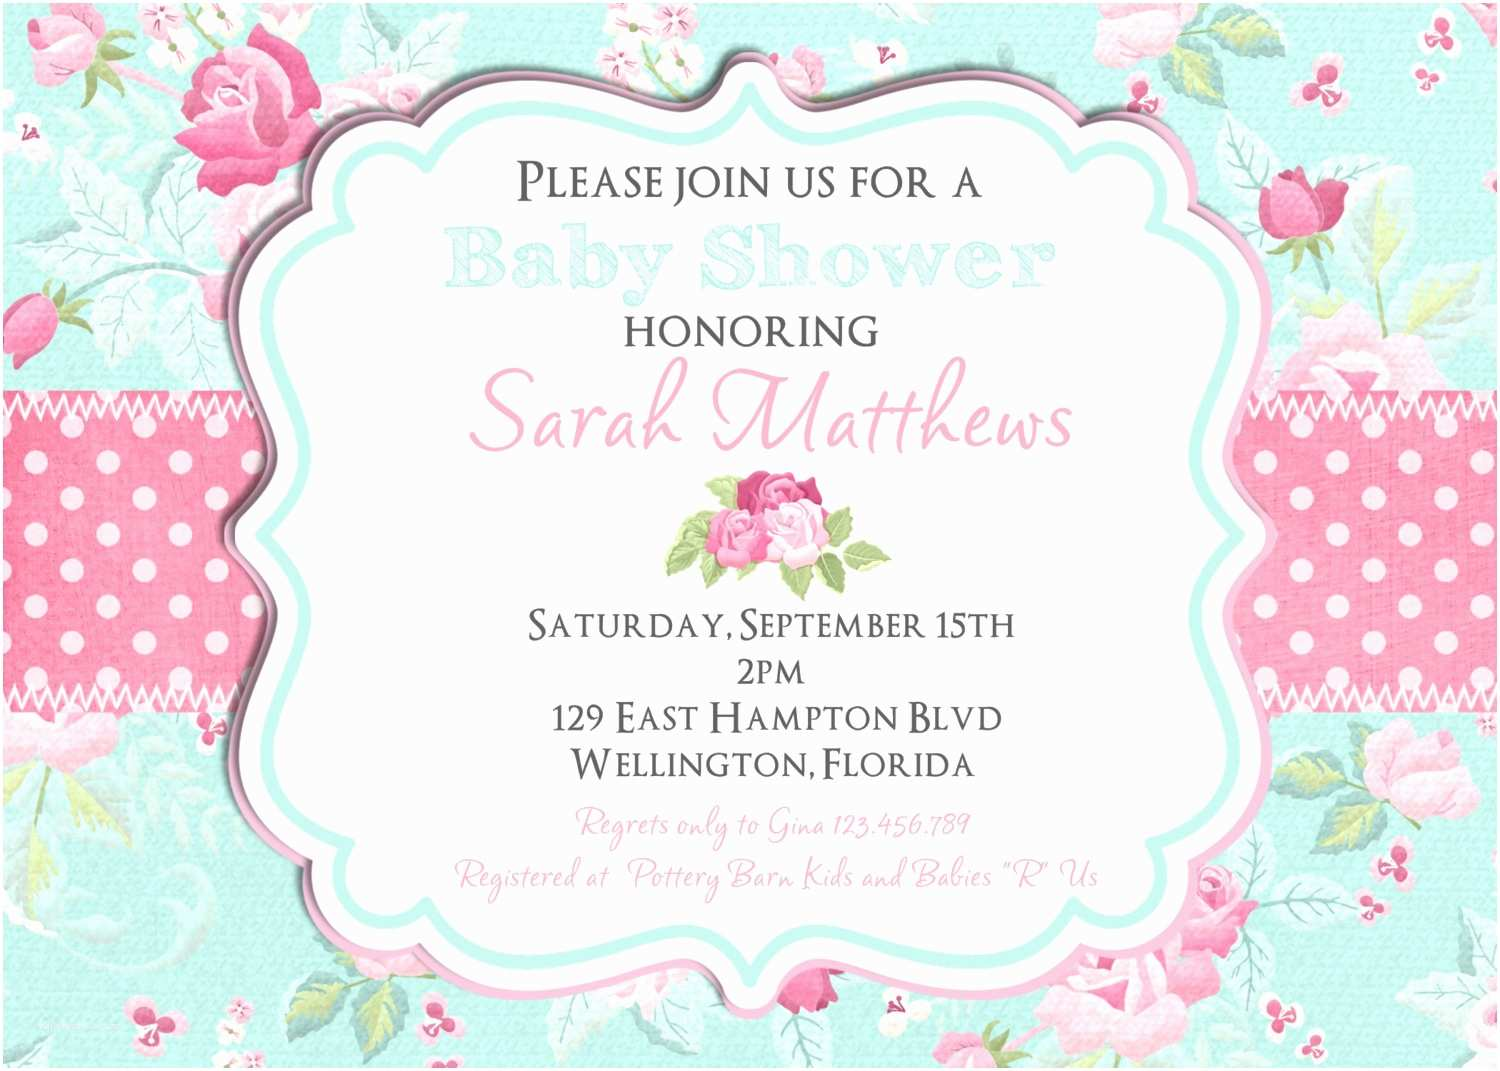 Shabby Chic Baby Shower Invitations Shabby Chic Baby Shower Invitation Girl Baby Shower